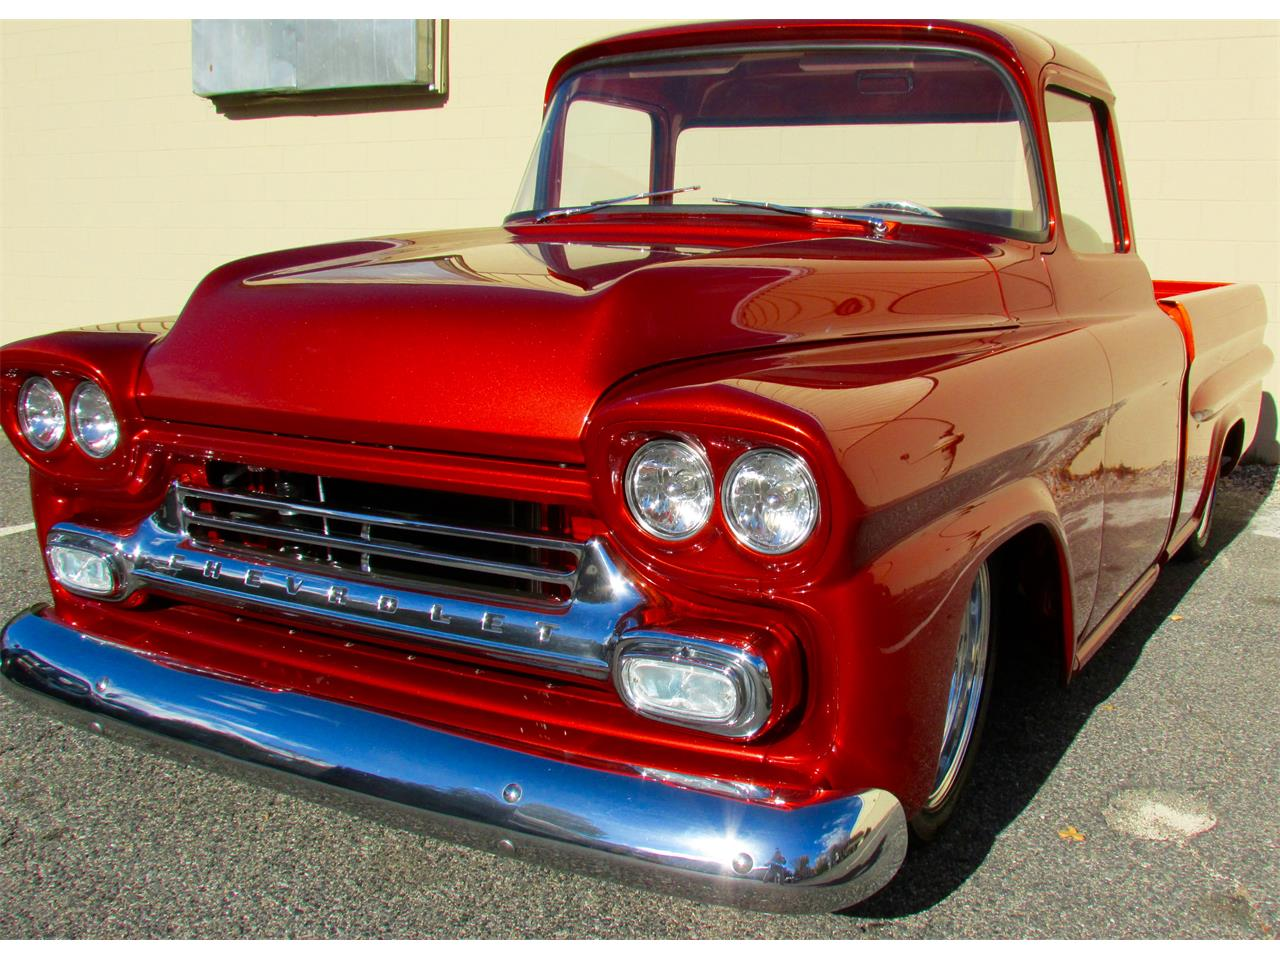 Large Picture of Classic '59 Chevrolet Fleetside Custom Pickup Truck  - $169,000.00 Offered by a Private Seller - JPTV